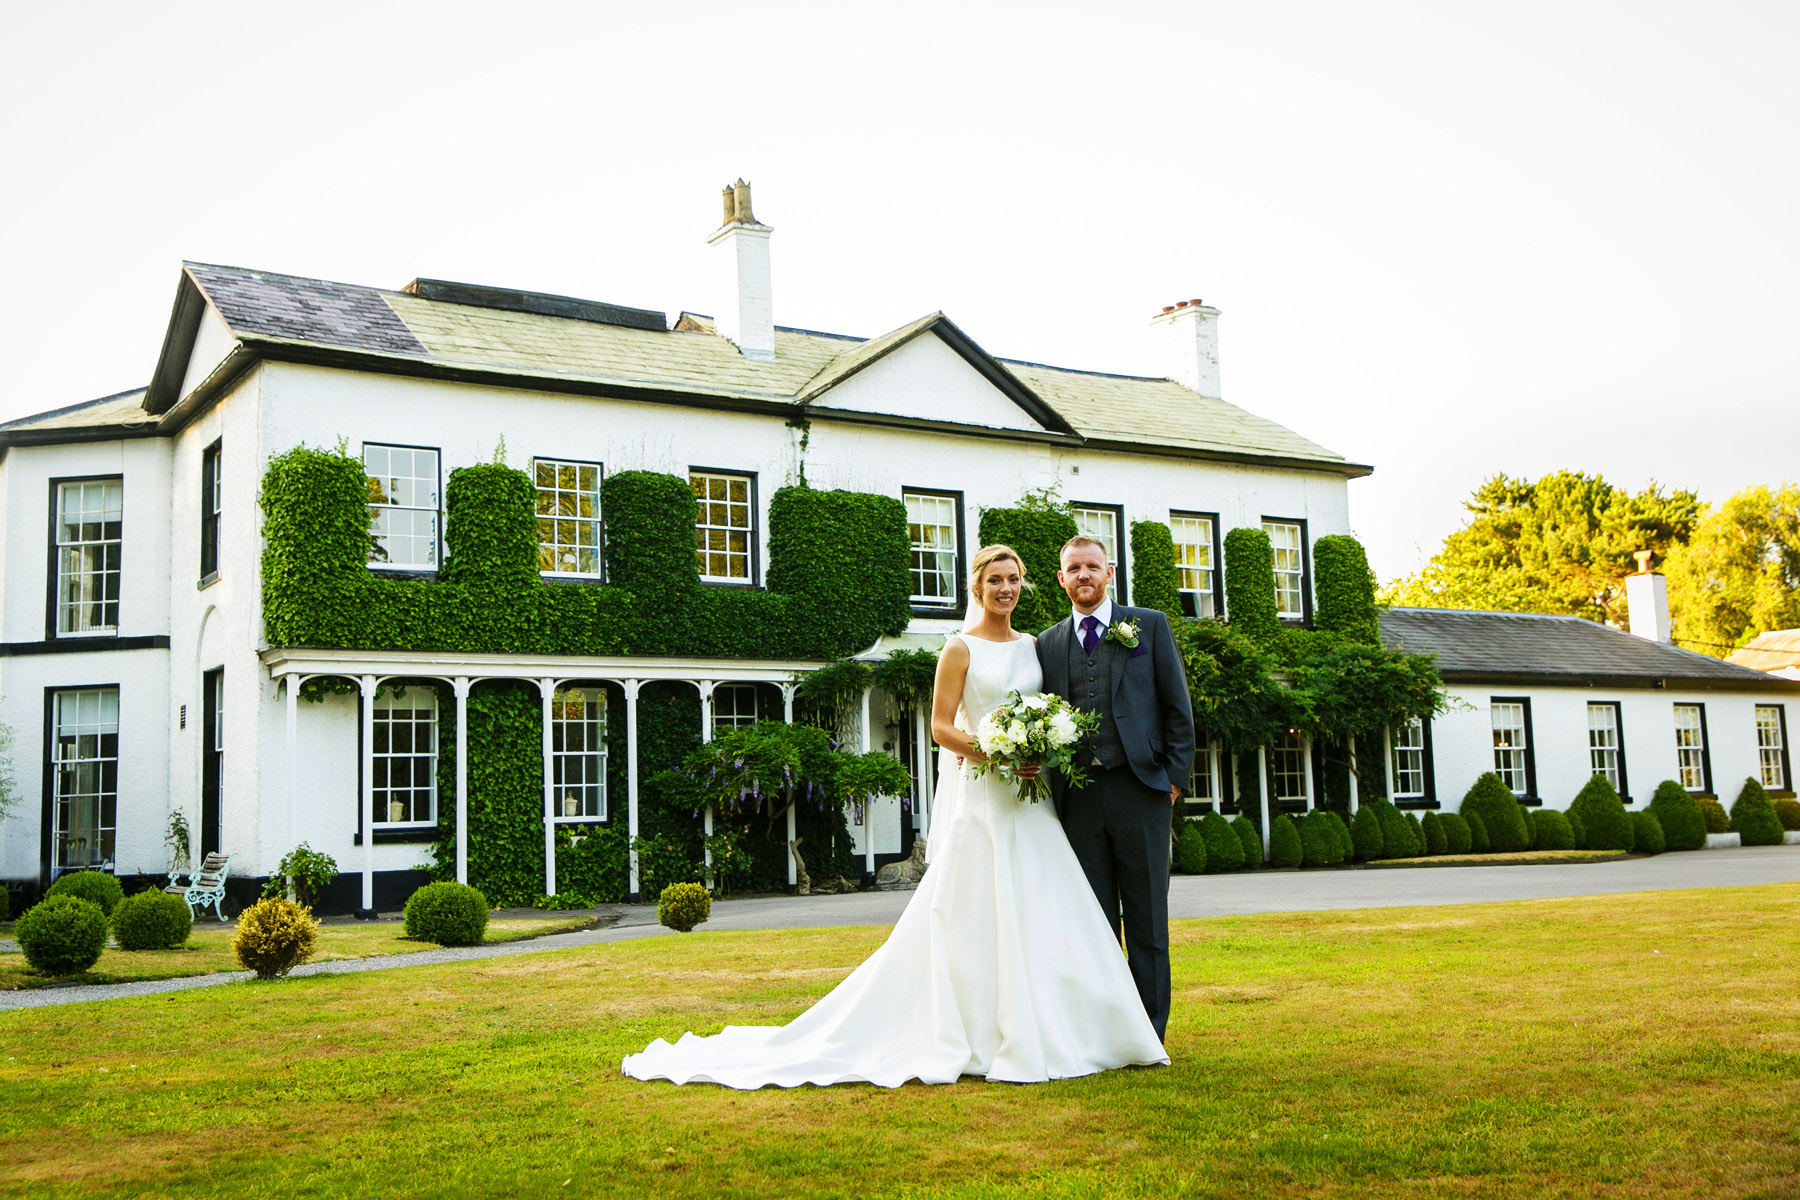 Bride and groom in front of Statham Lodge wedding